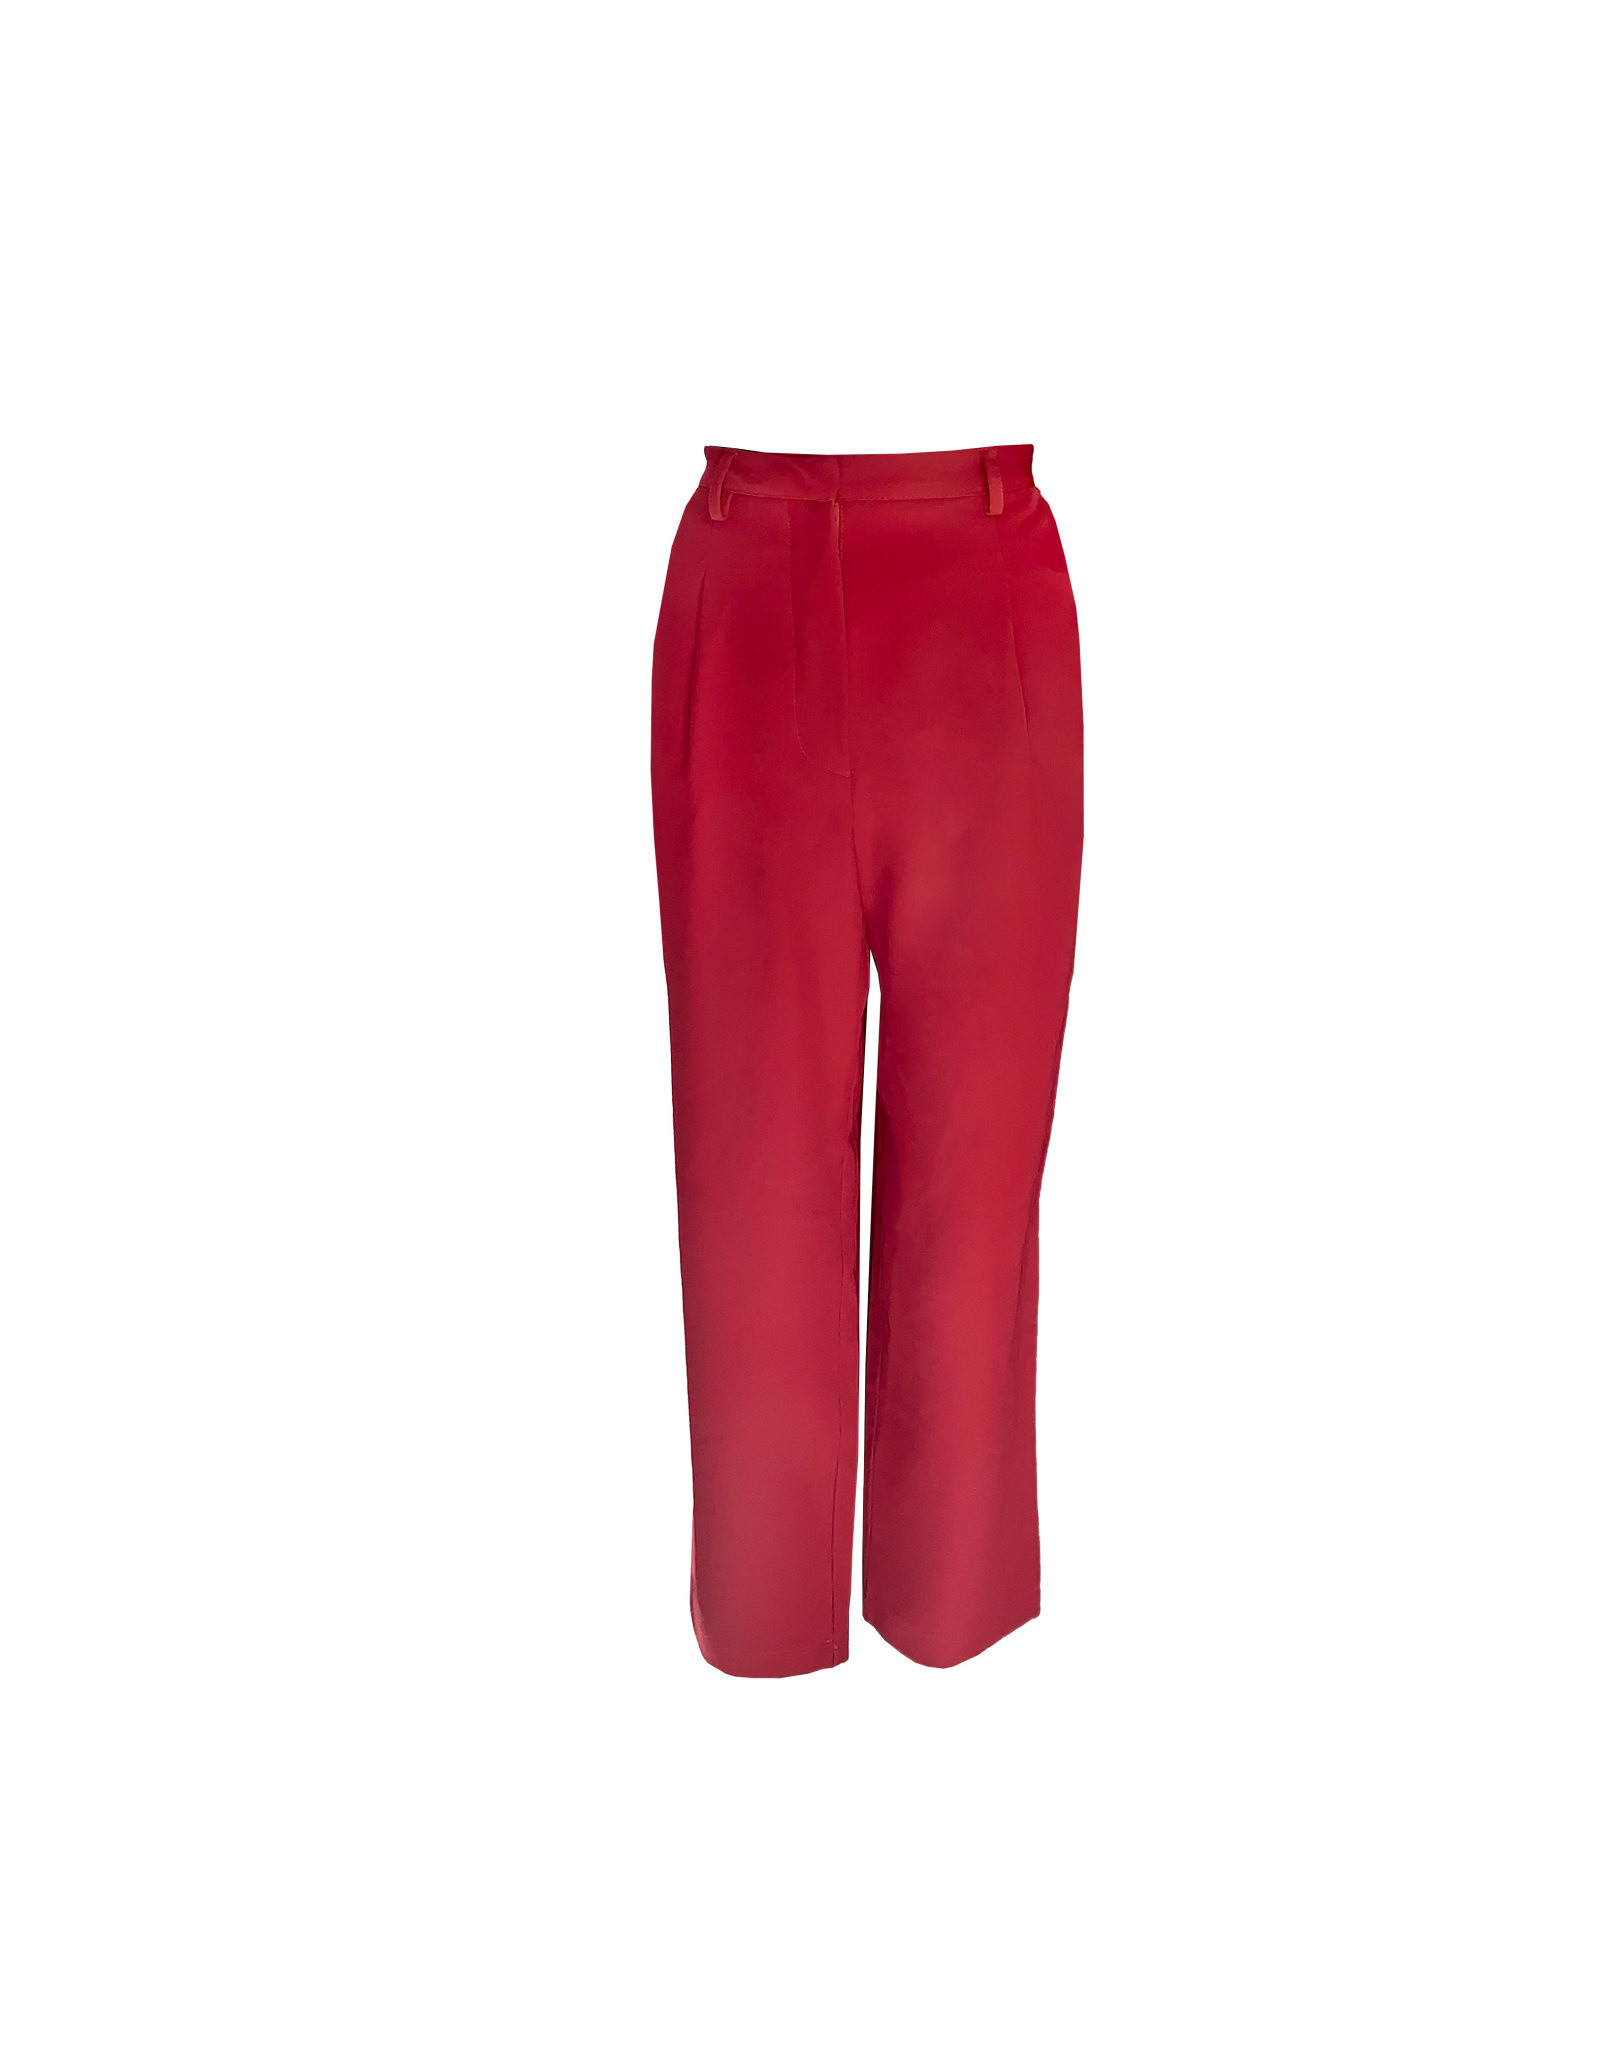 SUITSBLE FOR WORK SUITABLE FOR WORK   Women's  Pants Size S